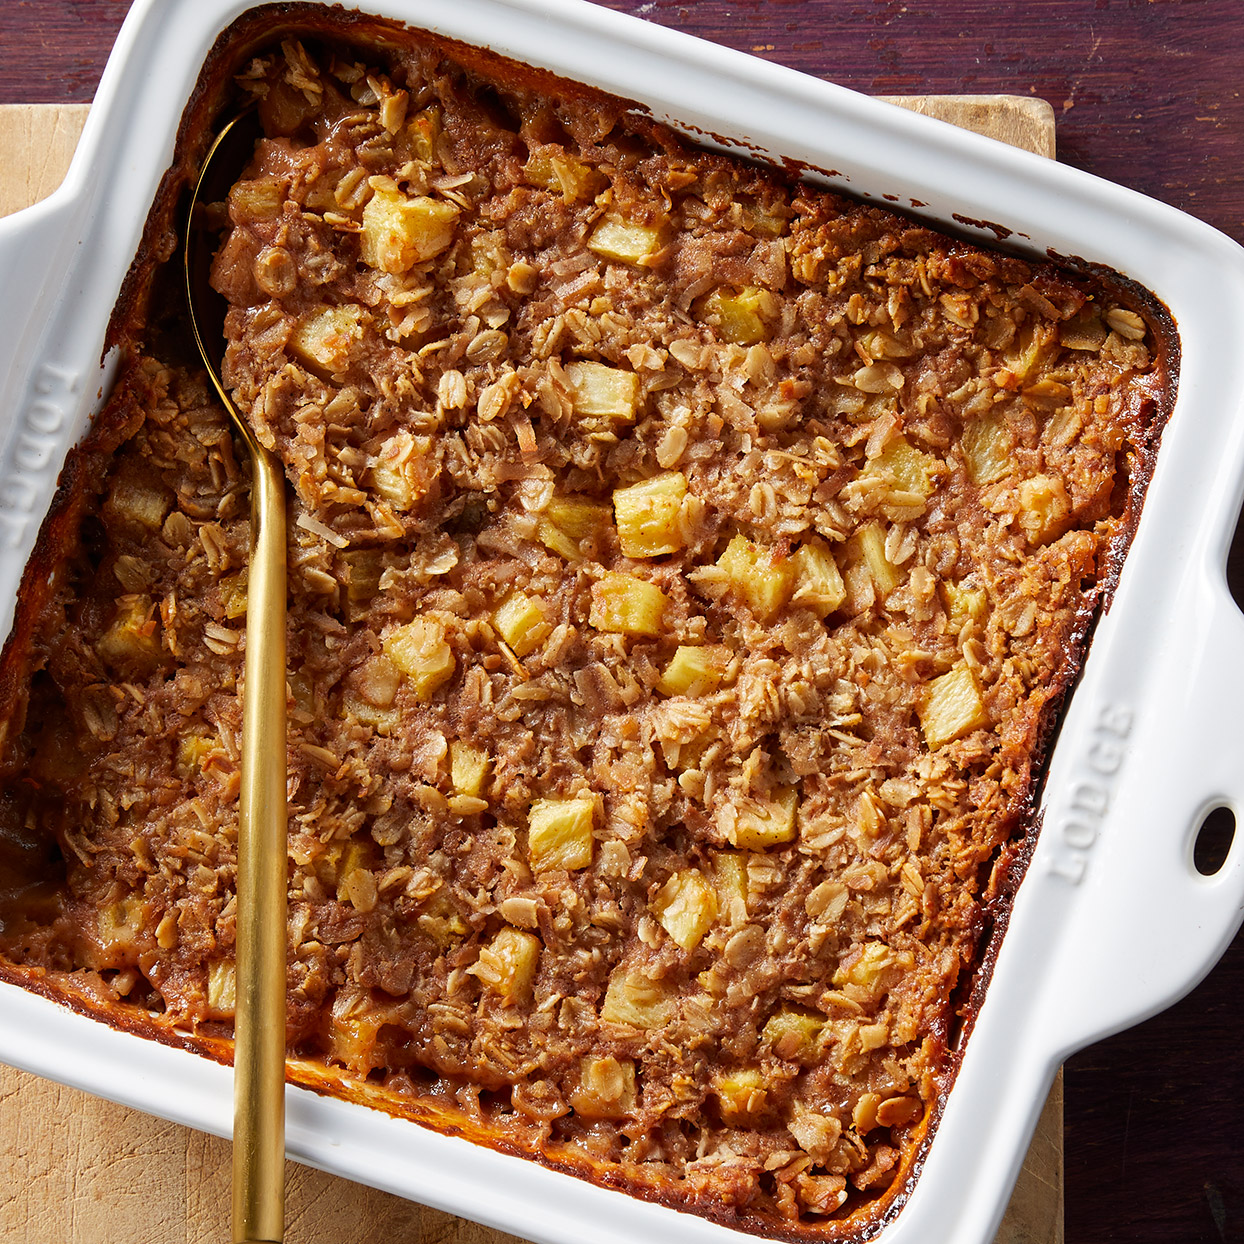 Vegan Pineapple & Coconut Baked Oatmeal Trusted Brands